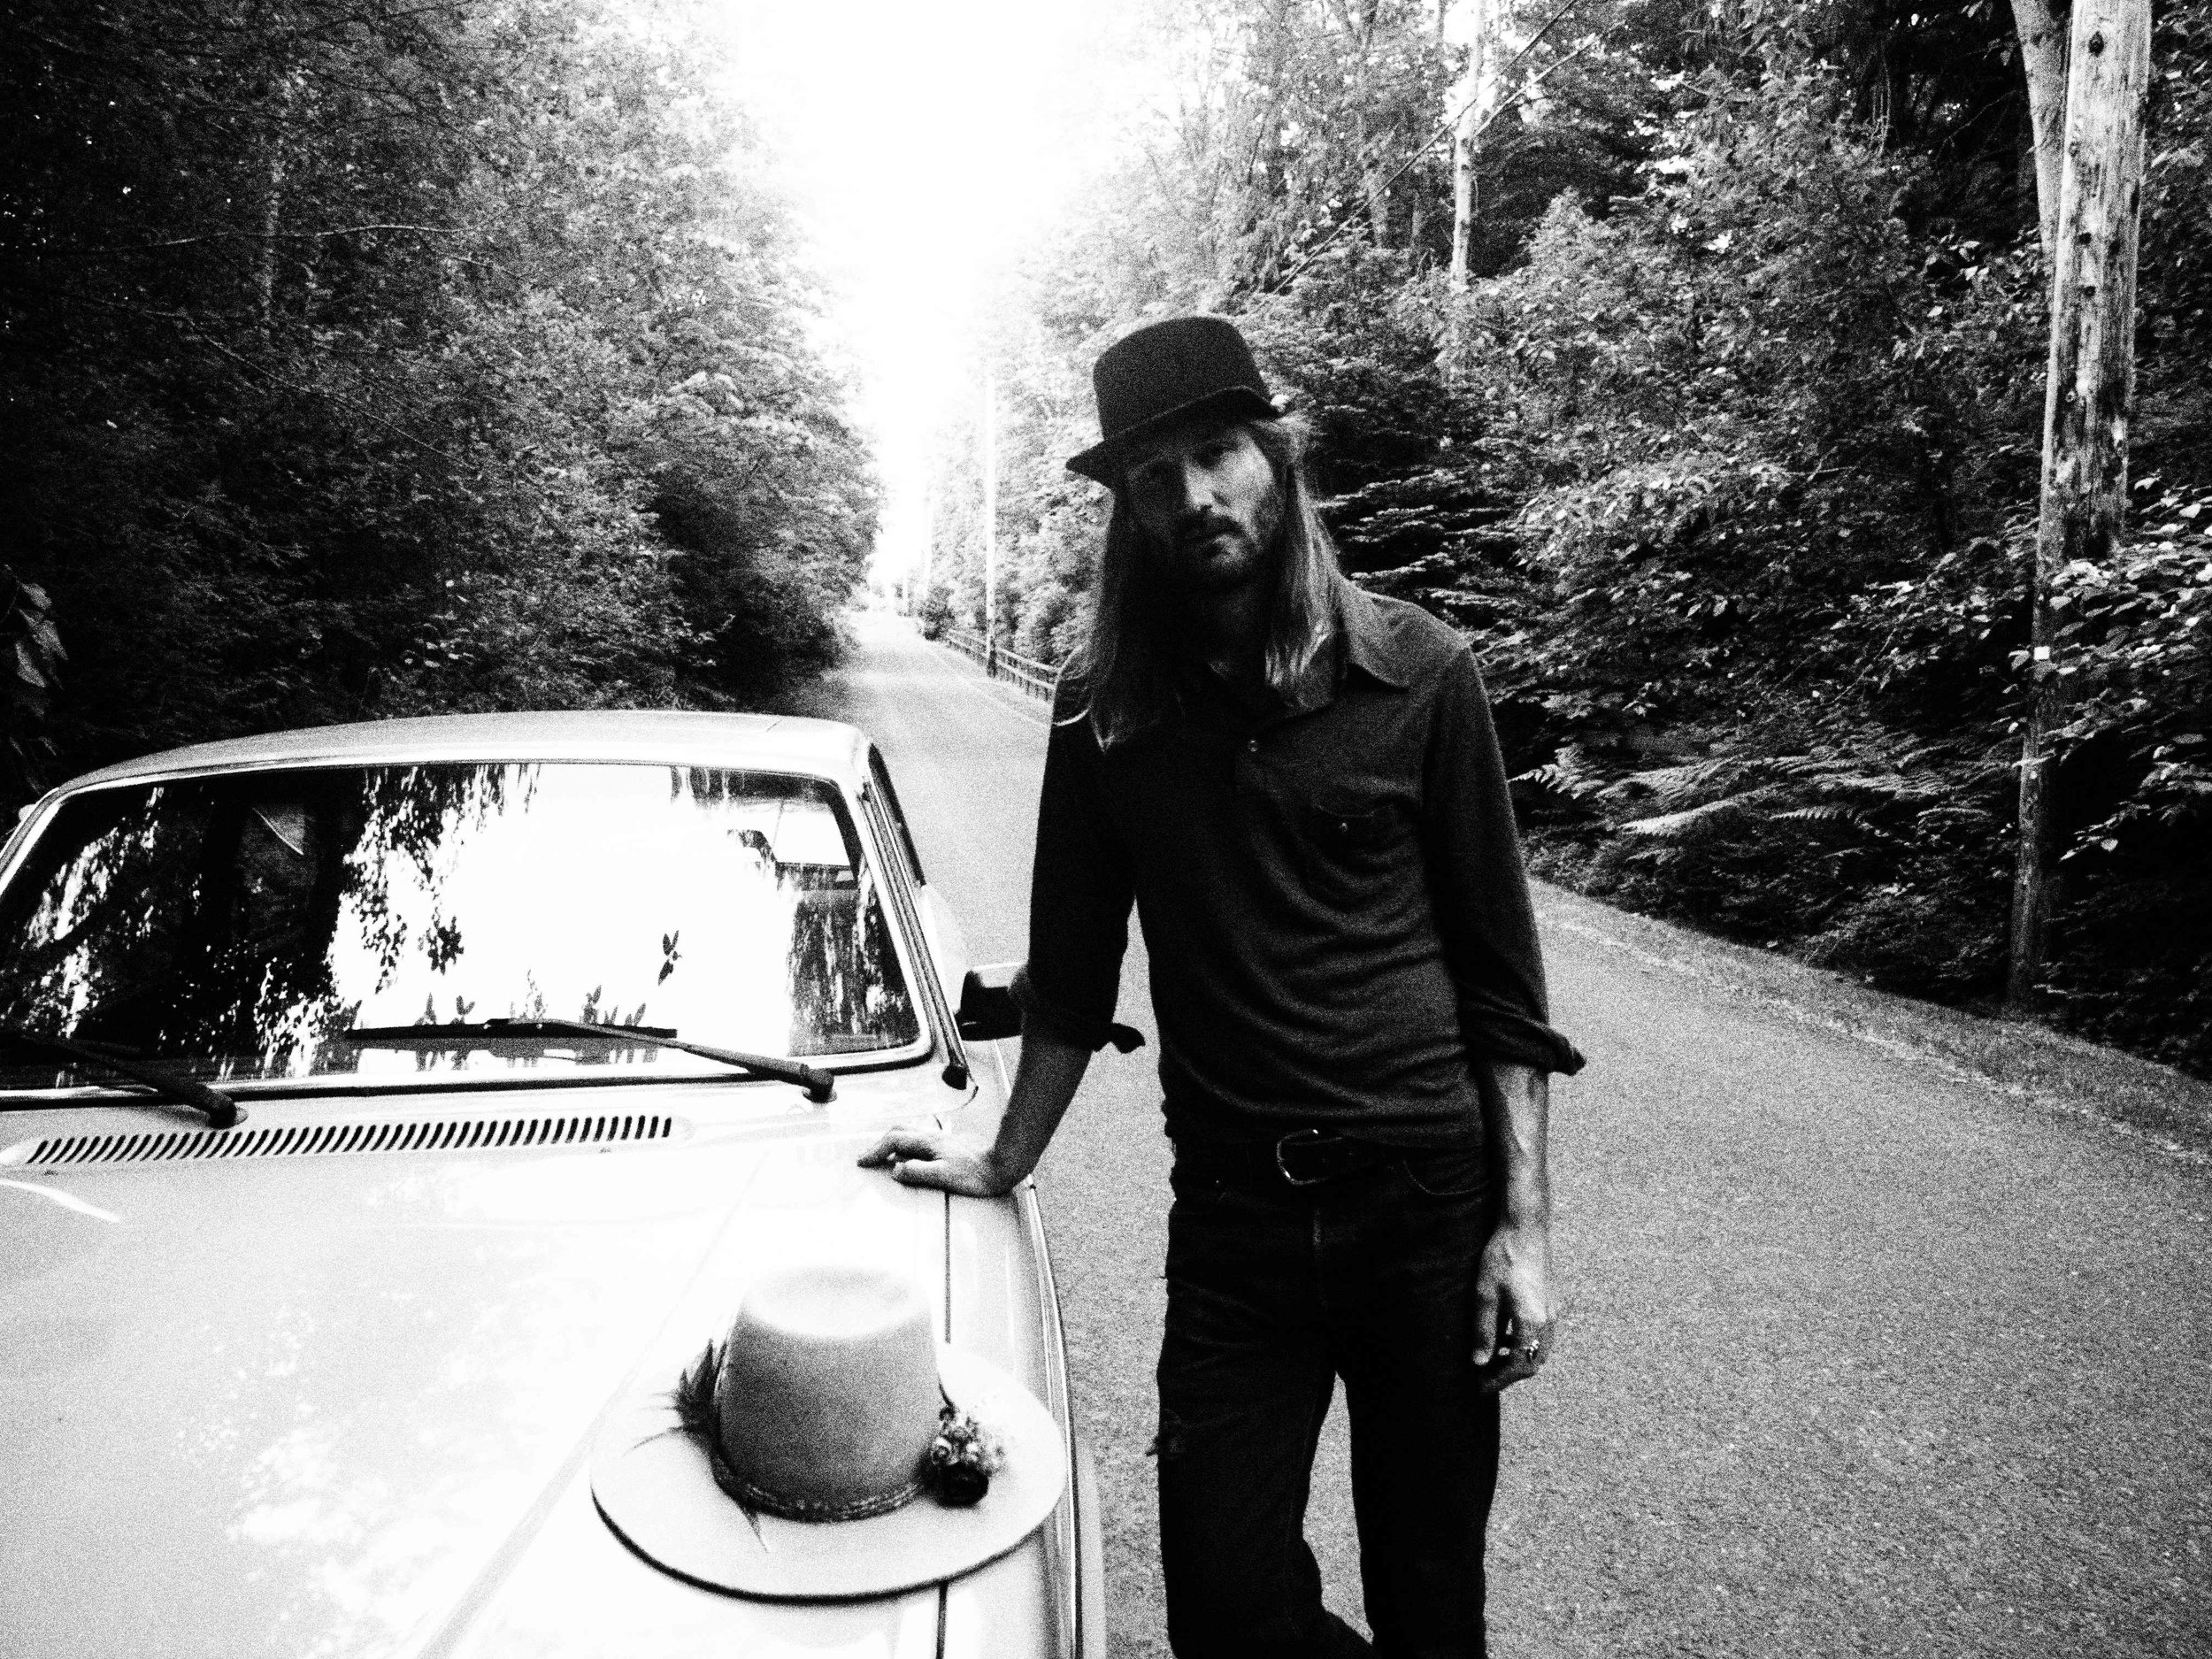 Braeden Paterson found standing with a hand-made hat, on location in the countryside of Vancouver Island, British Columbia, Canada.